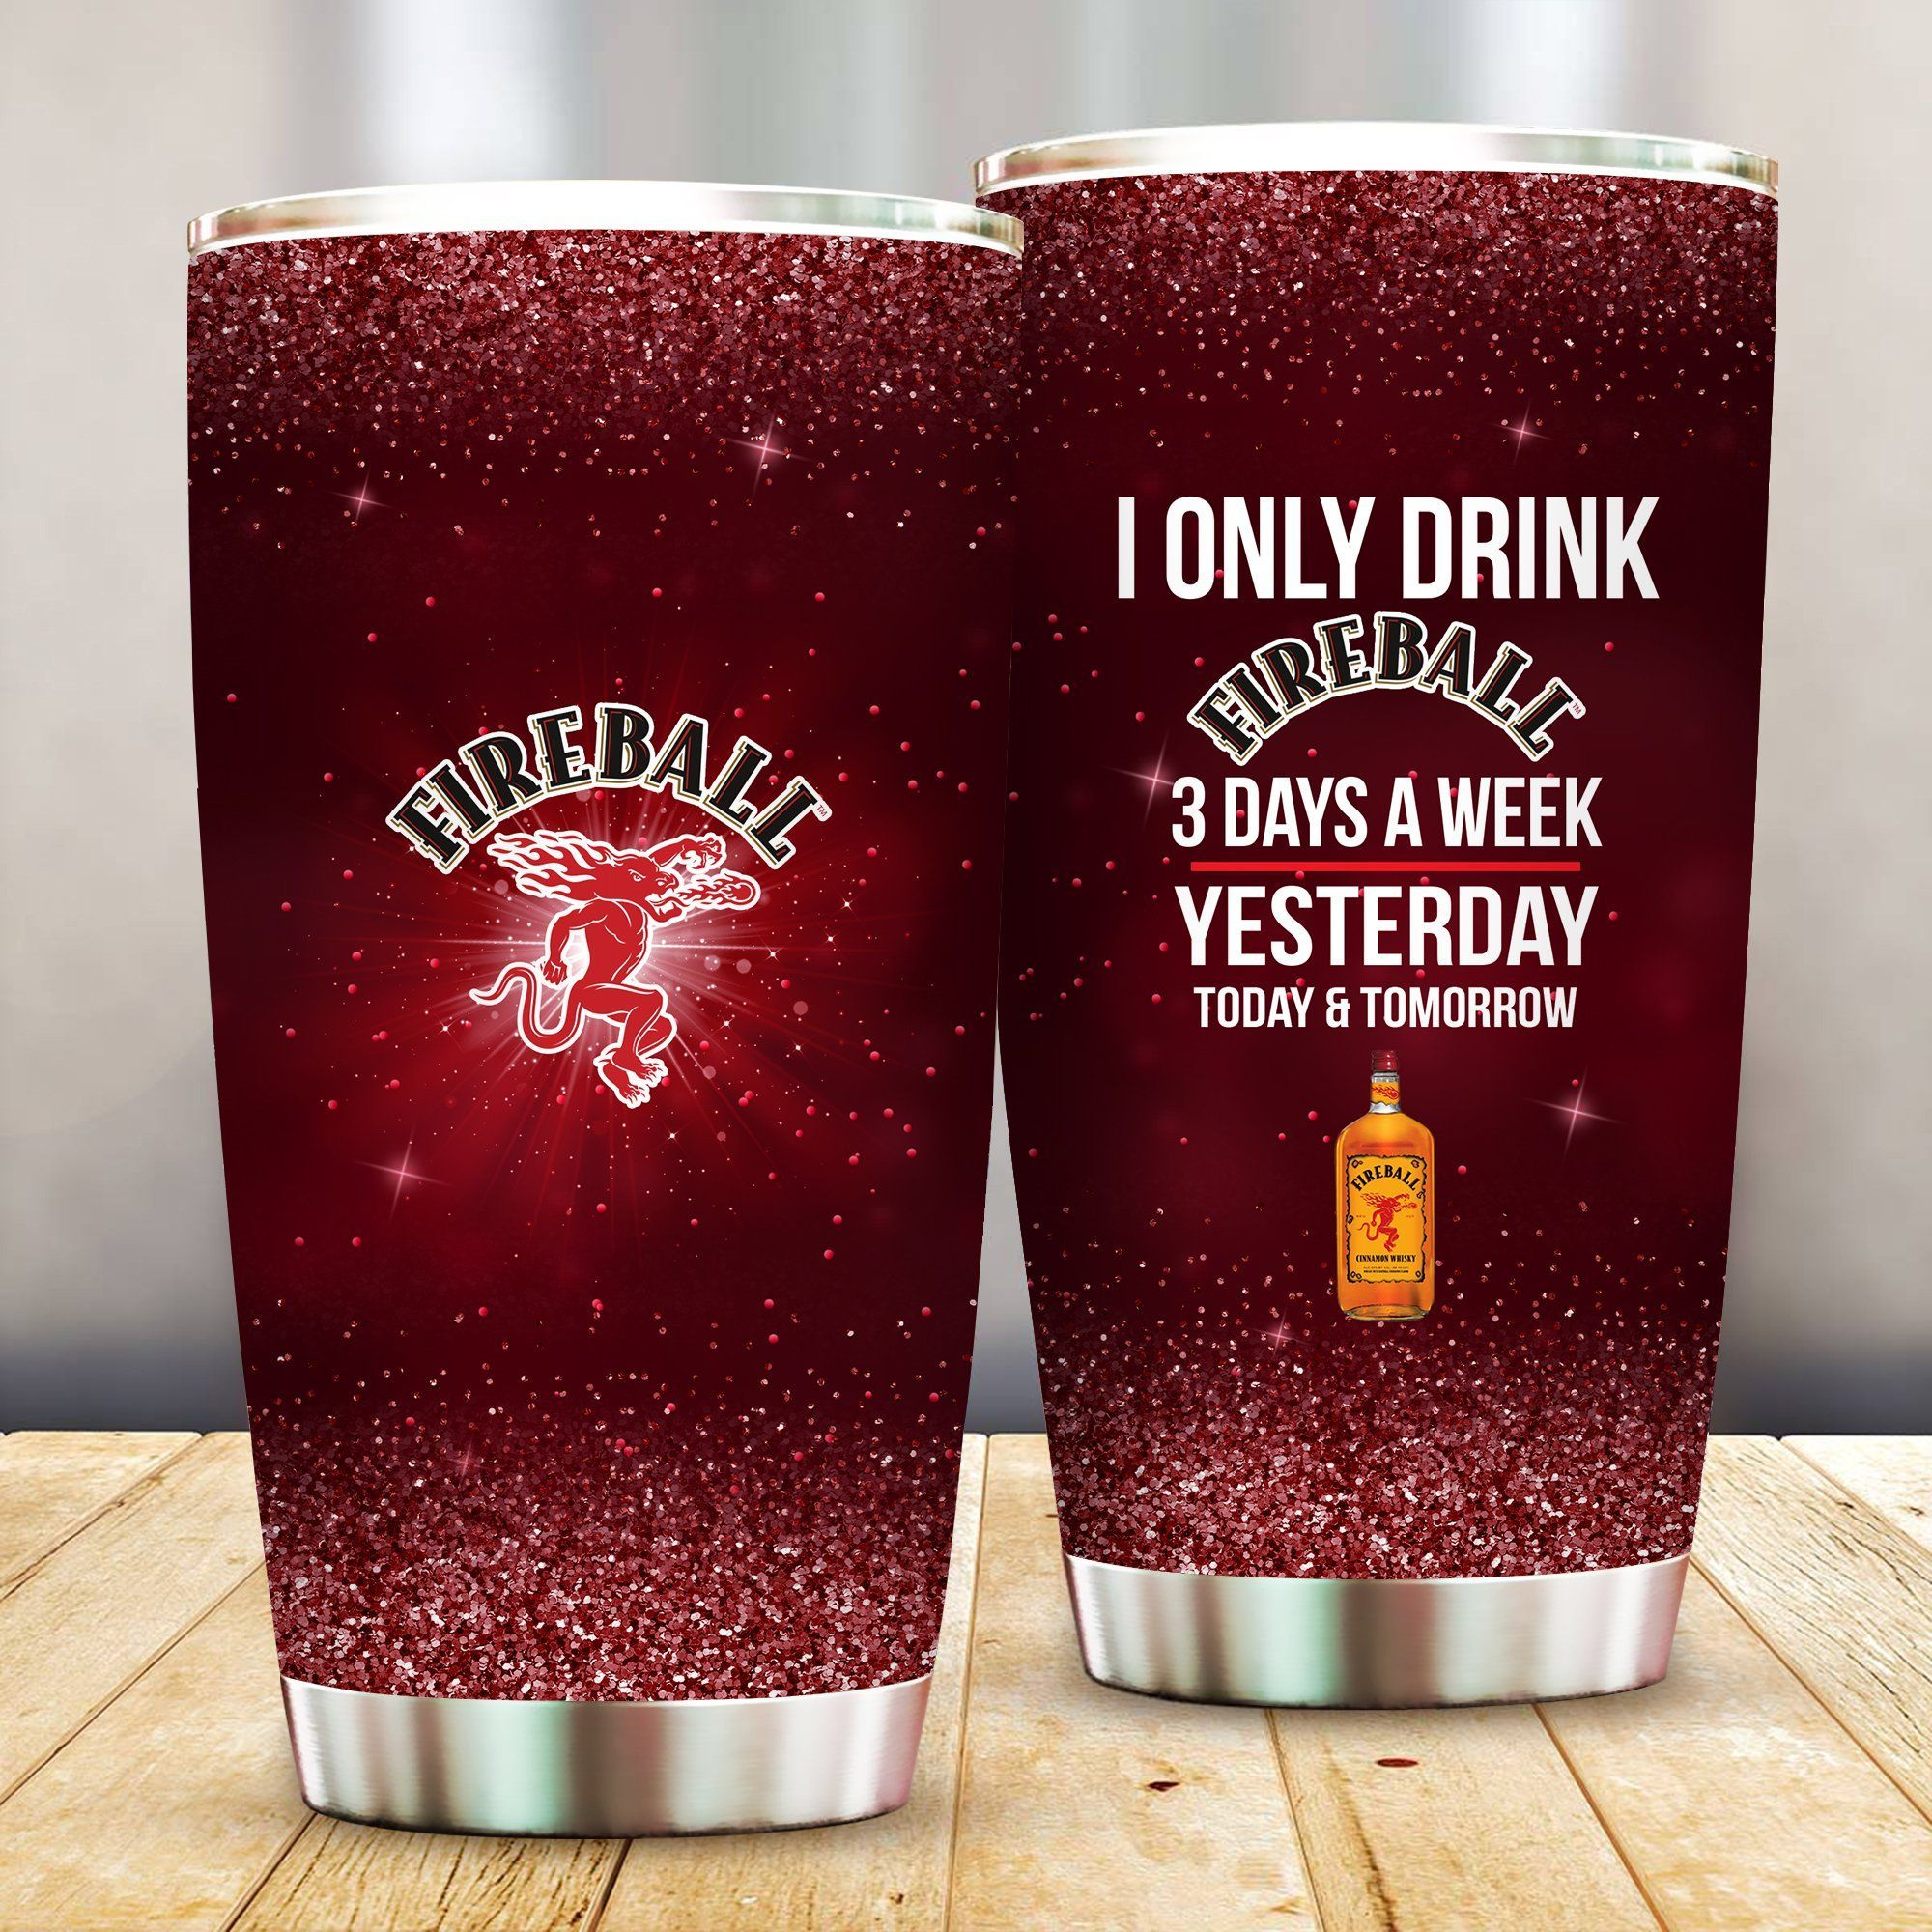 I Only Drink Fireball 3 Days A Week Yesterday Today and Tomorrow - Funny Customized Tumbler Cup Unisex Tshirt